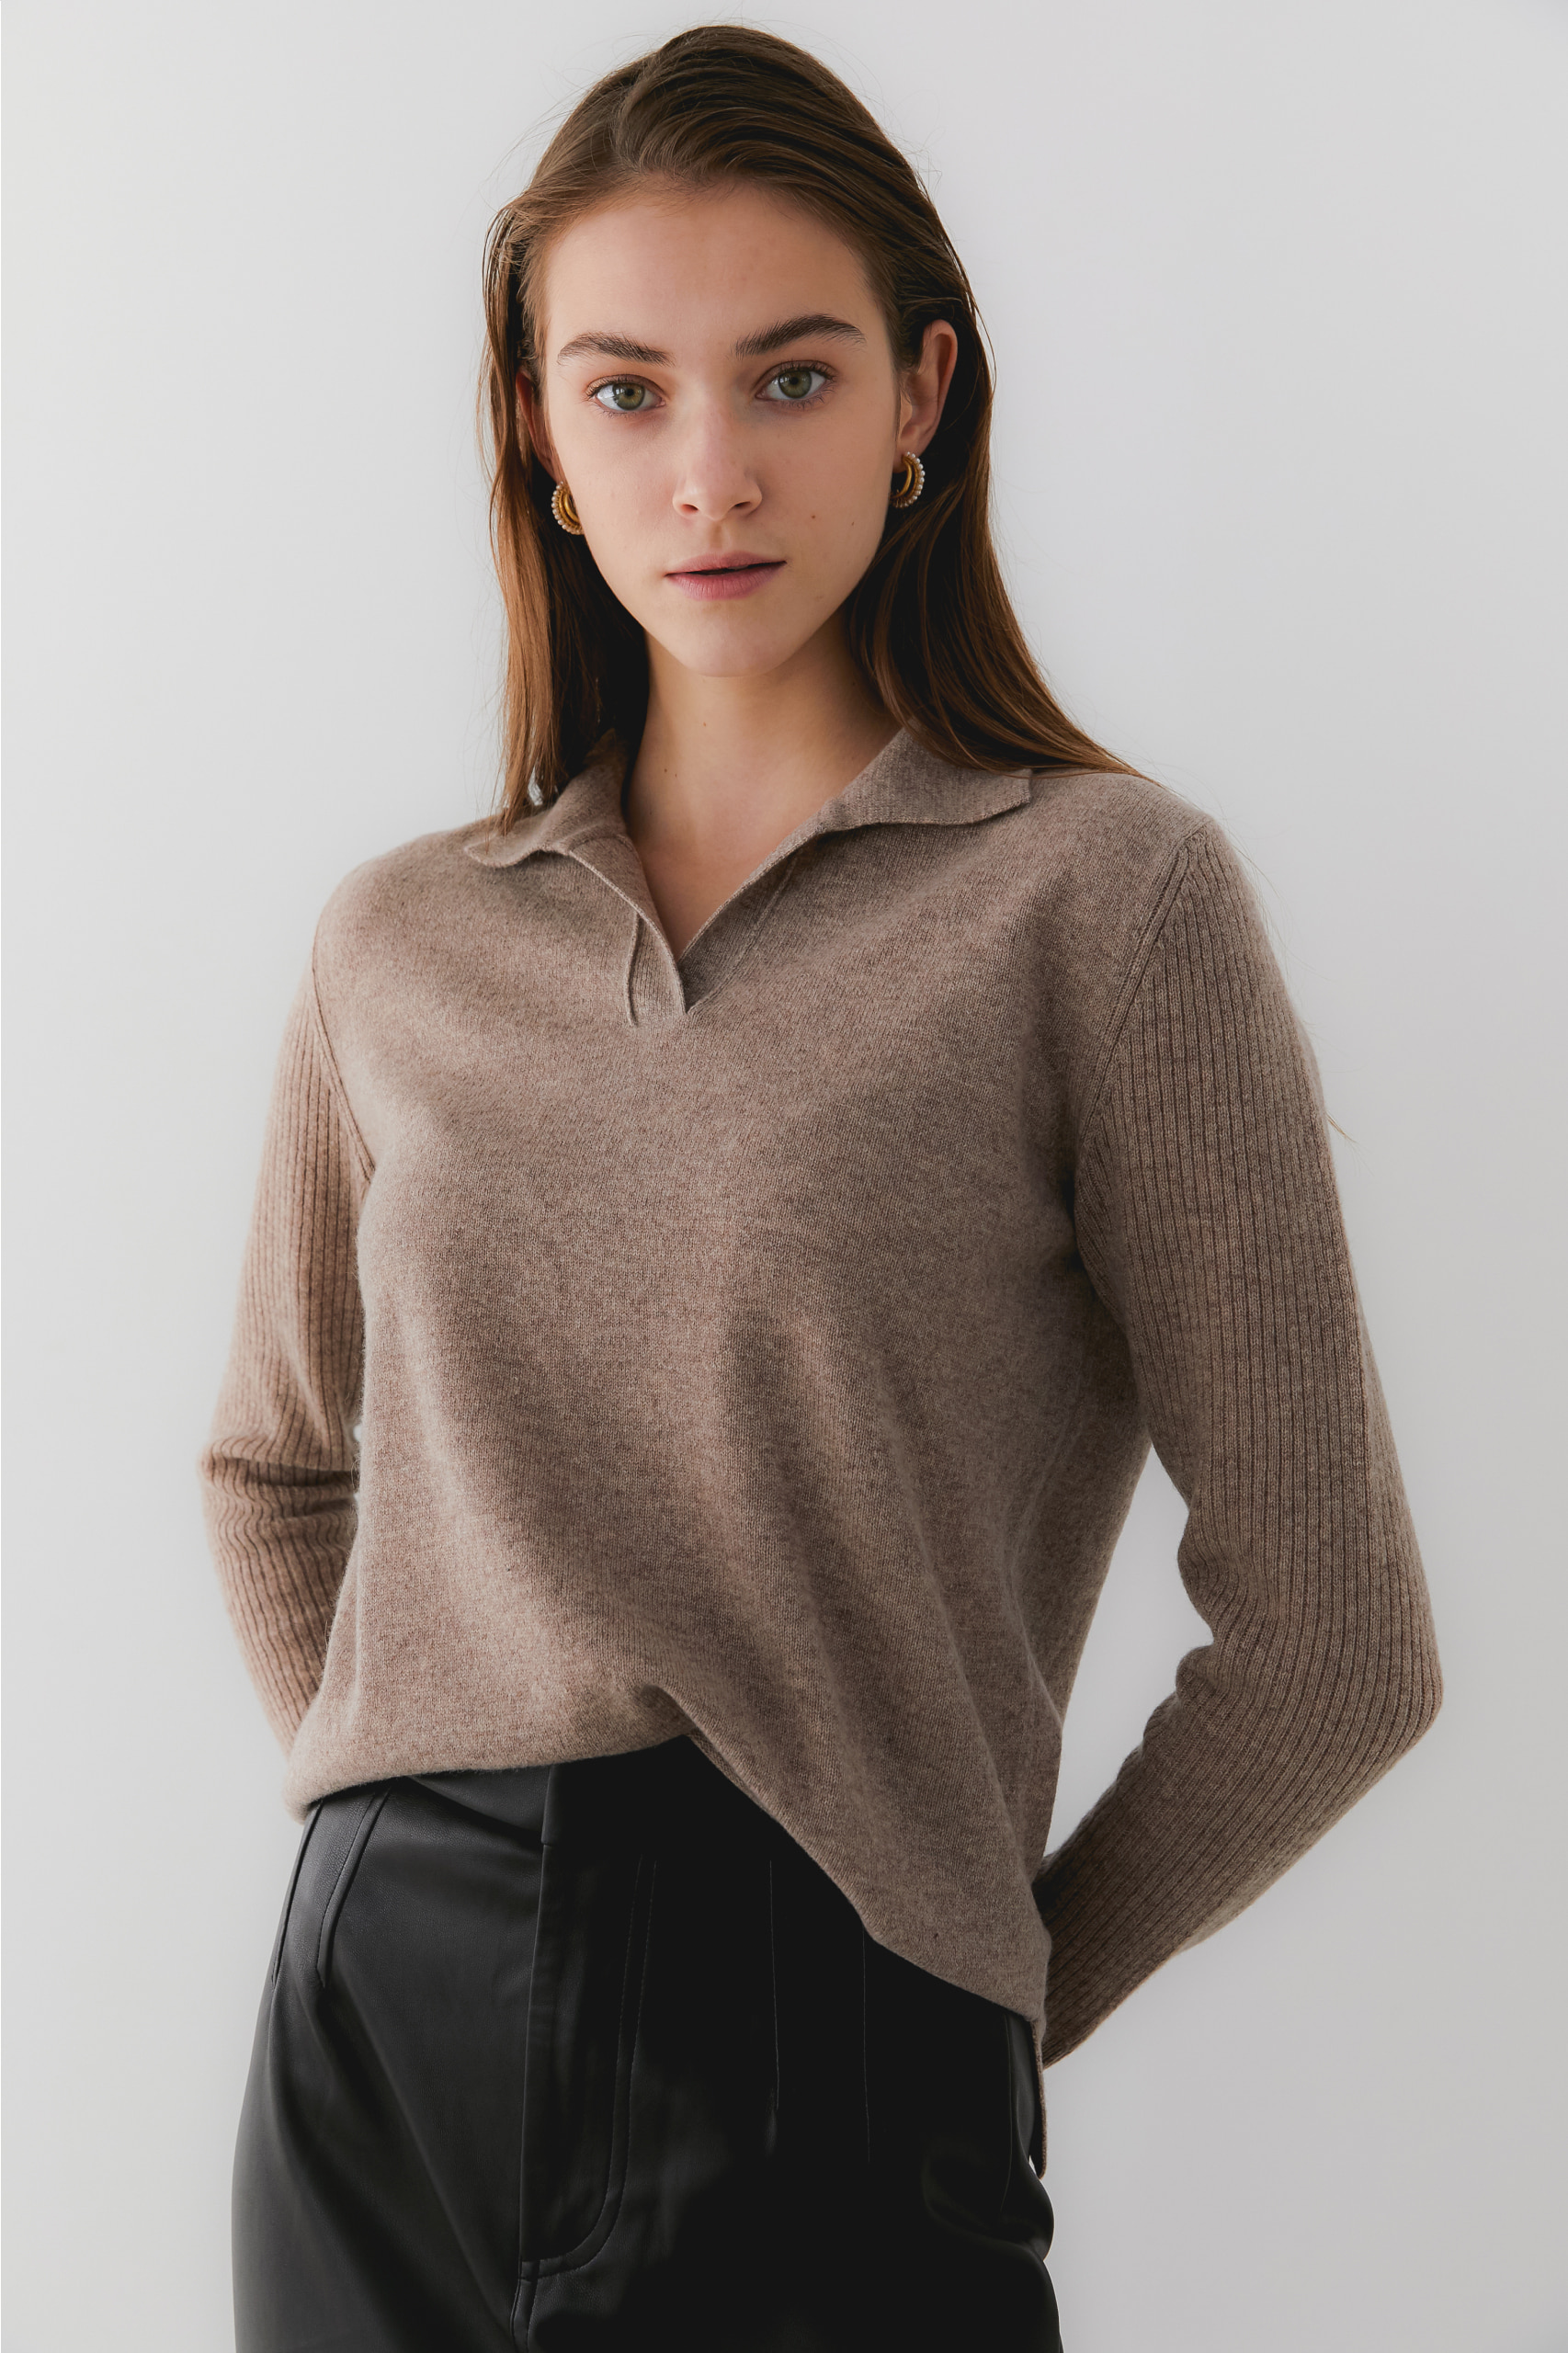 프리미엄 퓨어 캐시미어100 카라 풀오버 Premium pure cashmere100 ribbed soft-touch collar pullover - beige brown